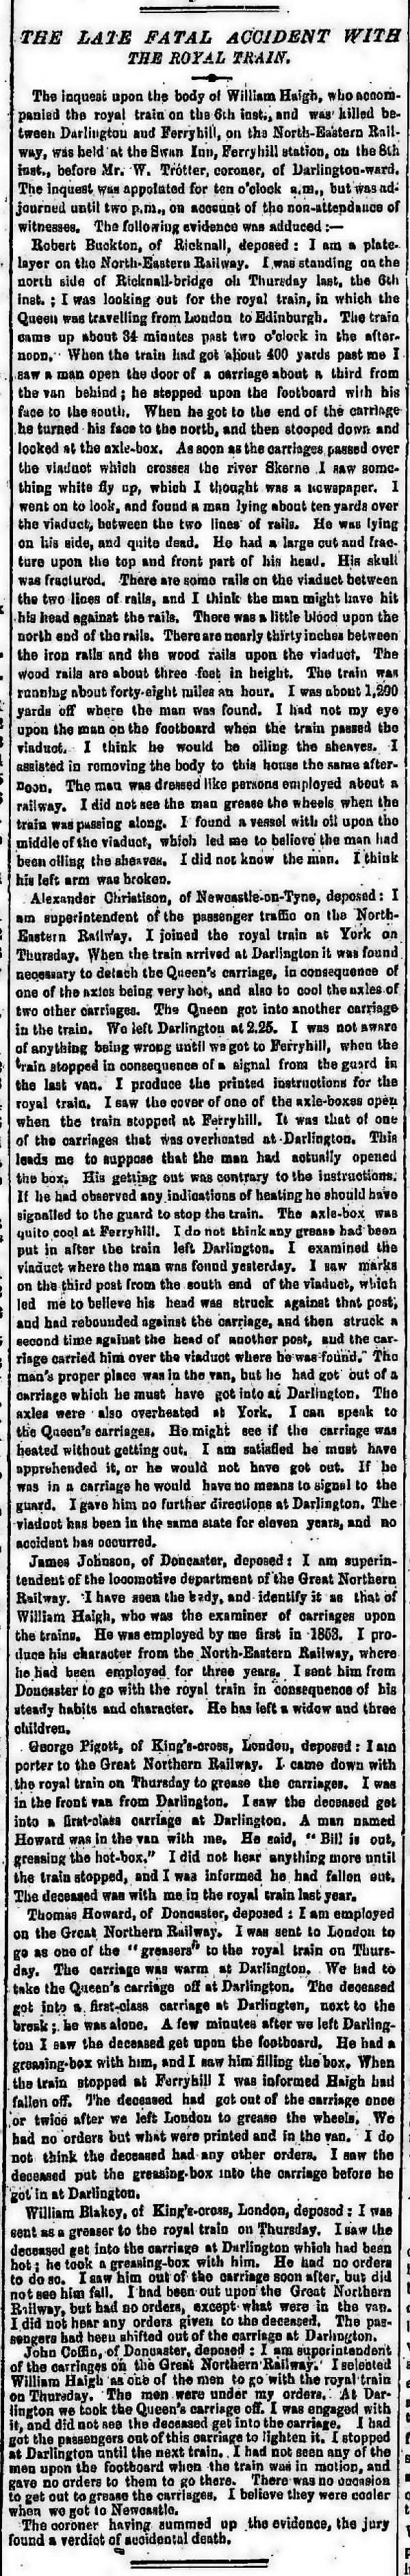 The Morning Chronicle 12th September 1855, page 7 From The British Newspaper Archive Image © THE BRITISH LIBRARY BOARD. ALL RIGHTS RESERVED